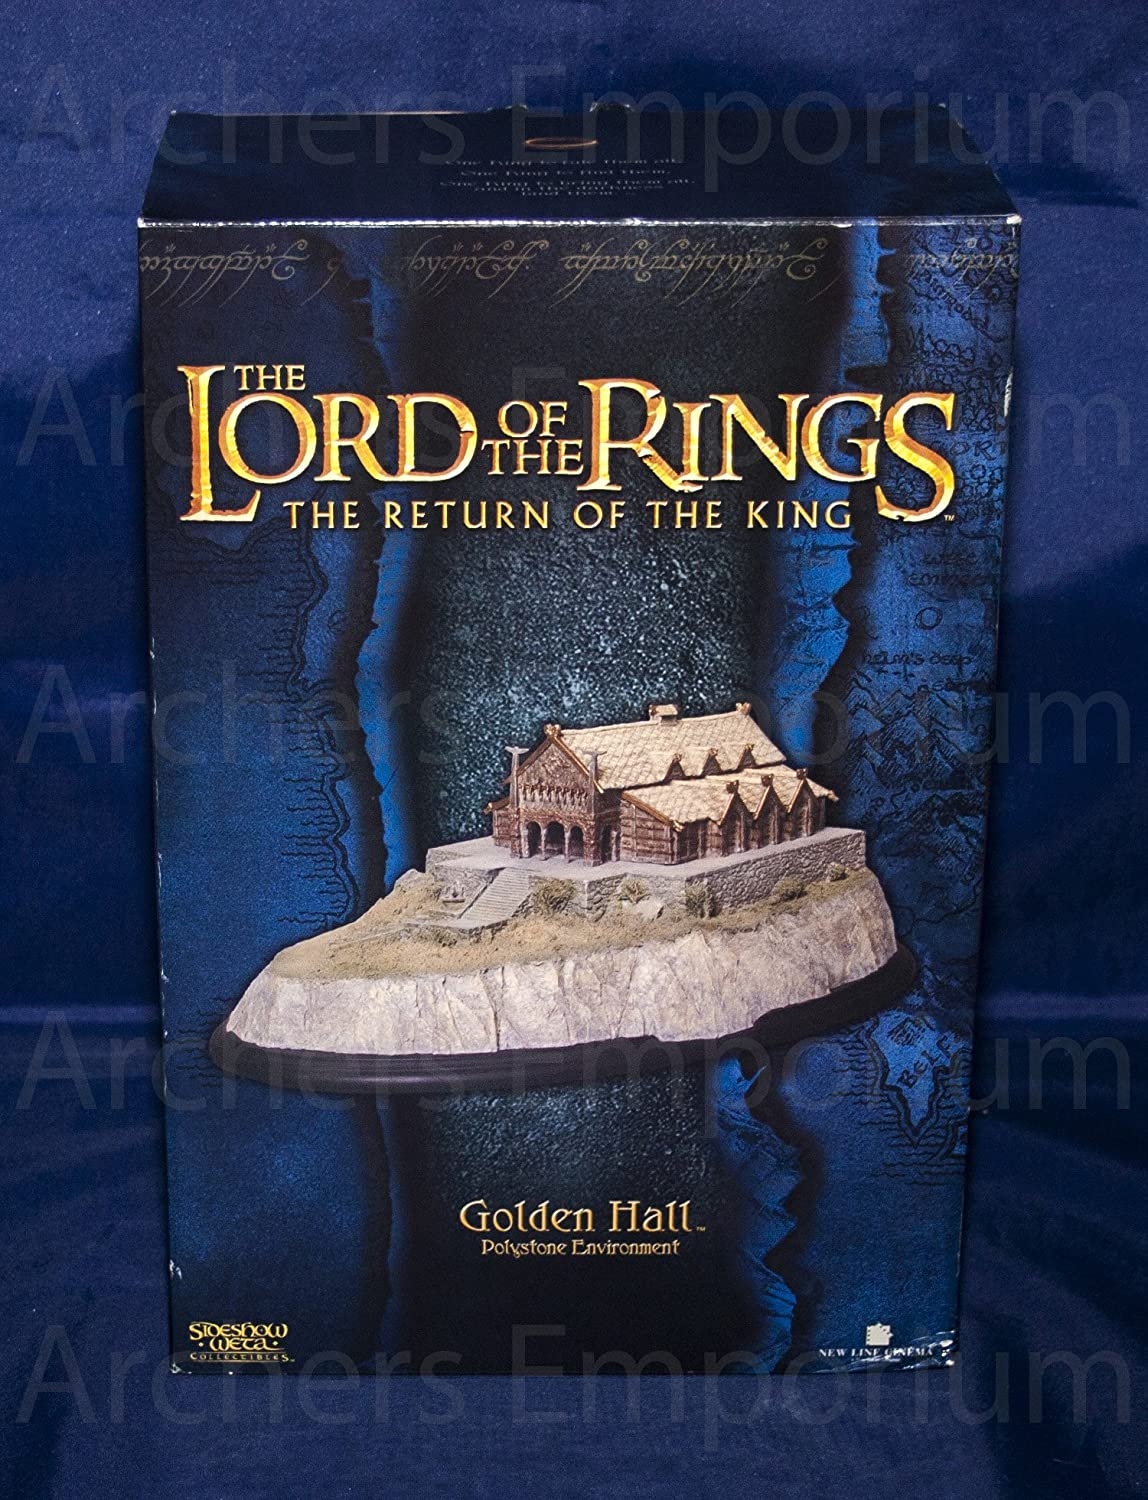 Sideshow Weta Herr der Ringe Golden Hall Lord of the Rings